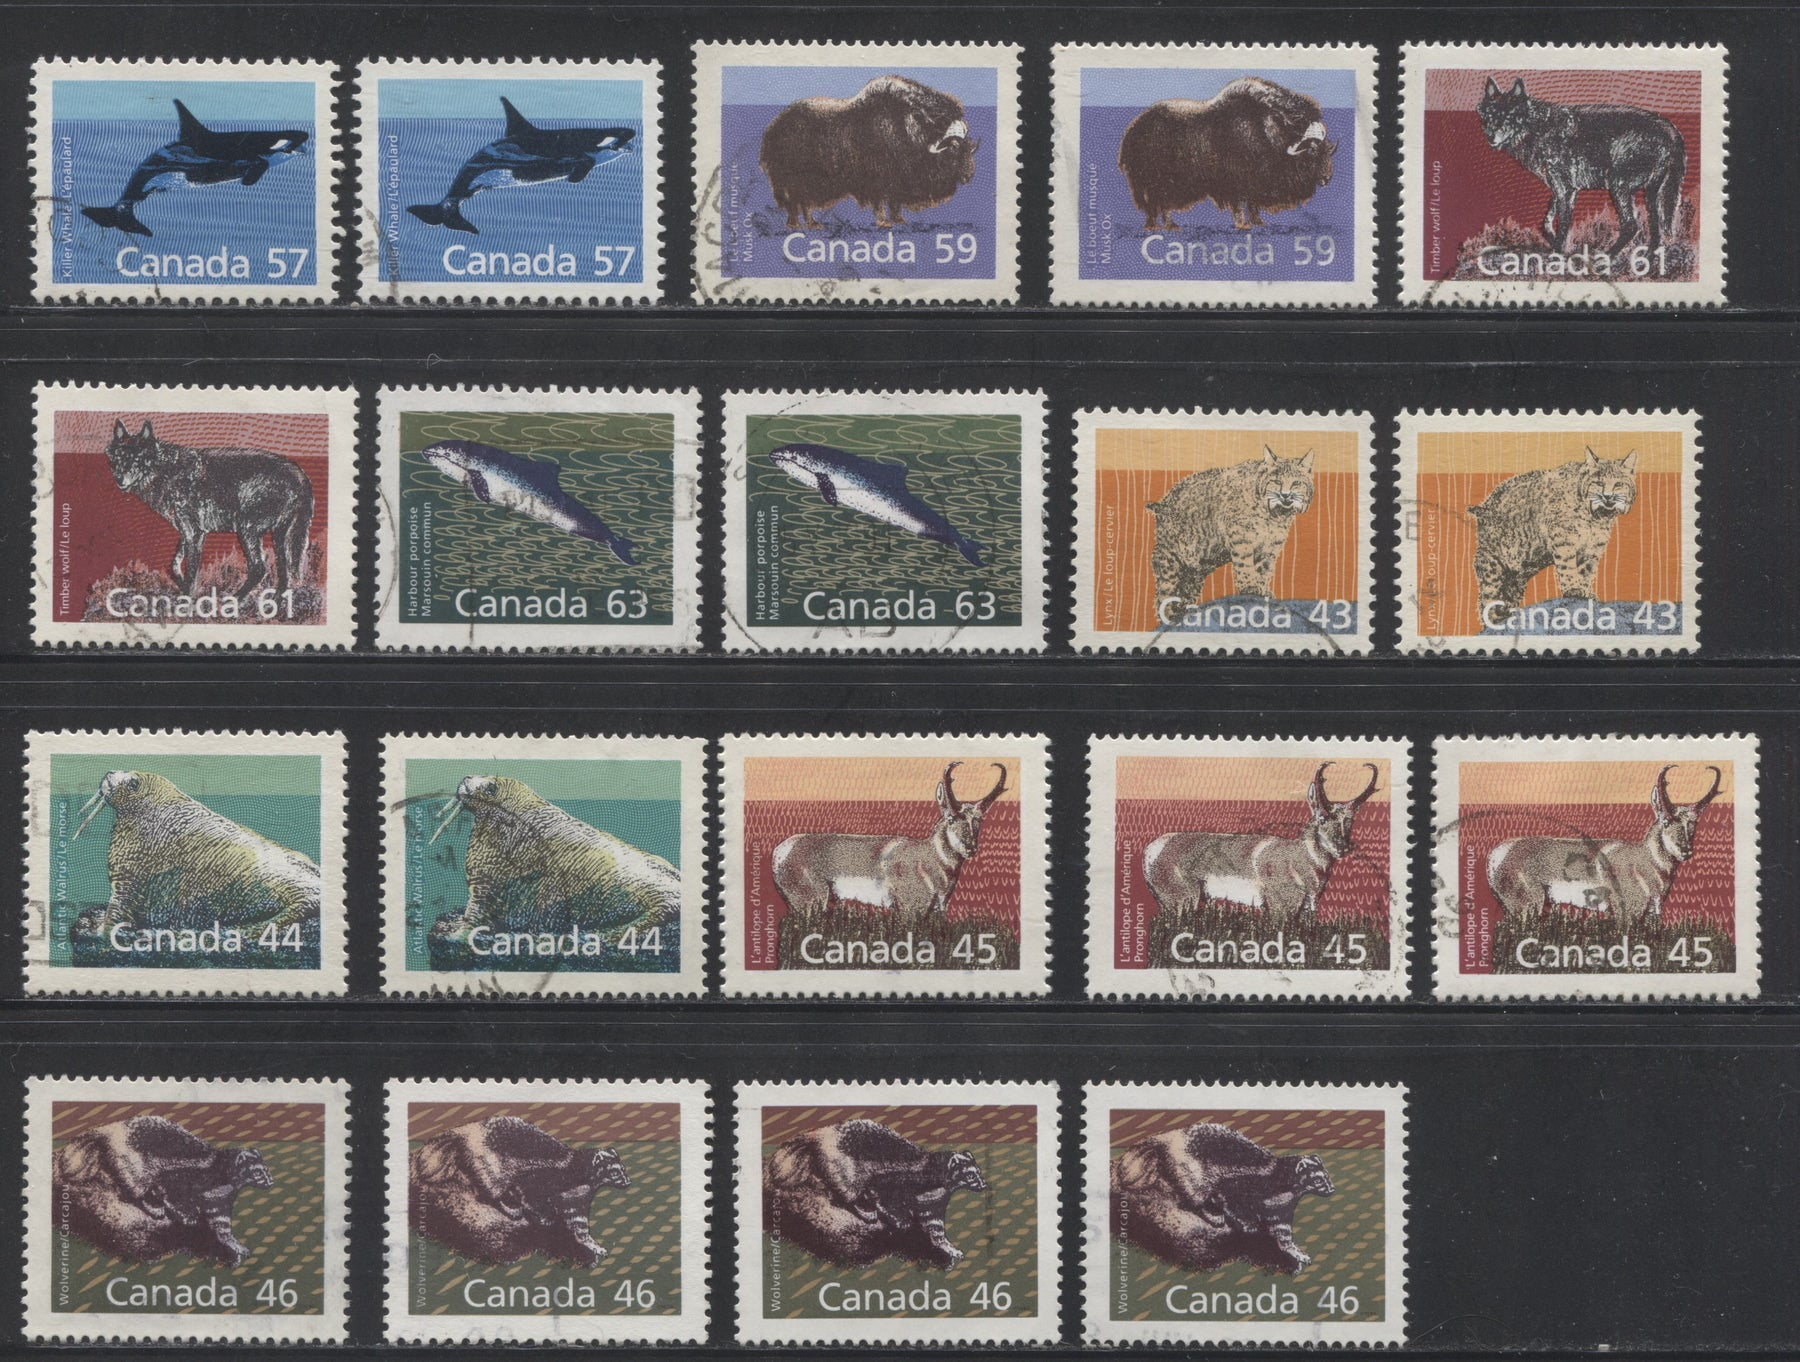 Canada #1170-1176a 44c-63c Mammals 1988-1991 Wildlife and Architecture Issue, a VF Used Specialized Group of 19 Stamps on Different Papers and With Various Perfs